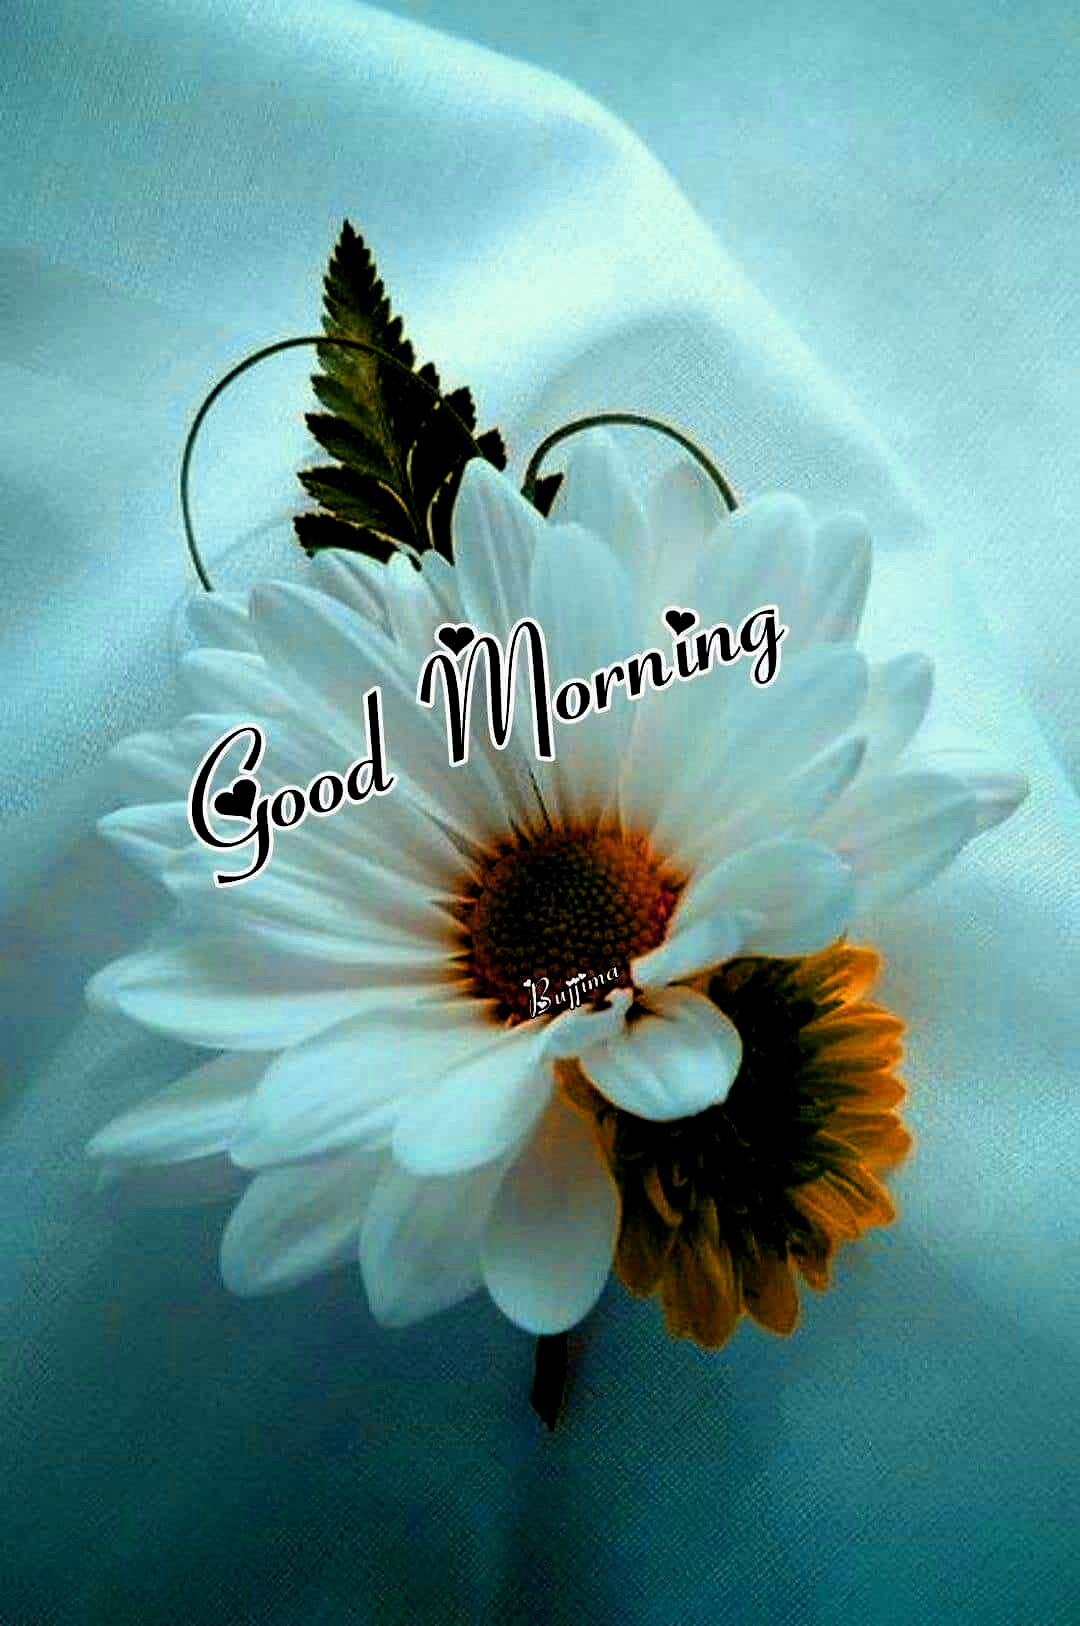 good morning images app